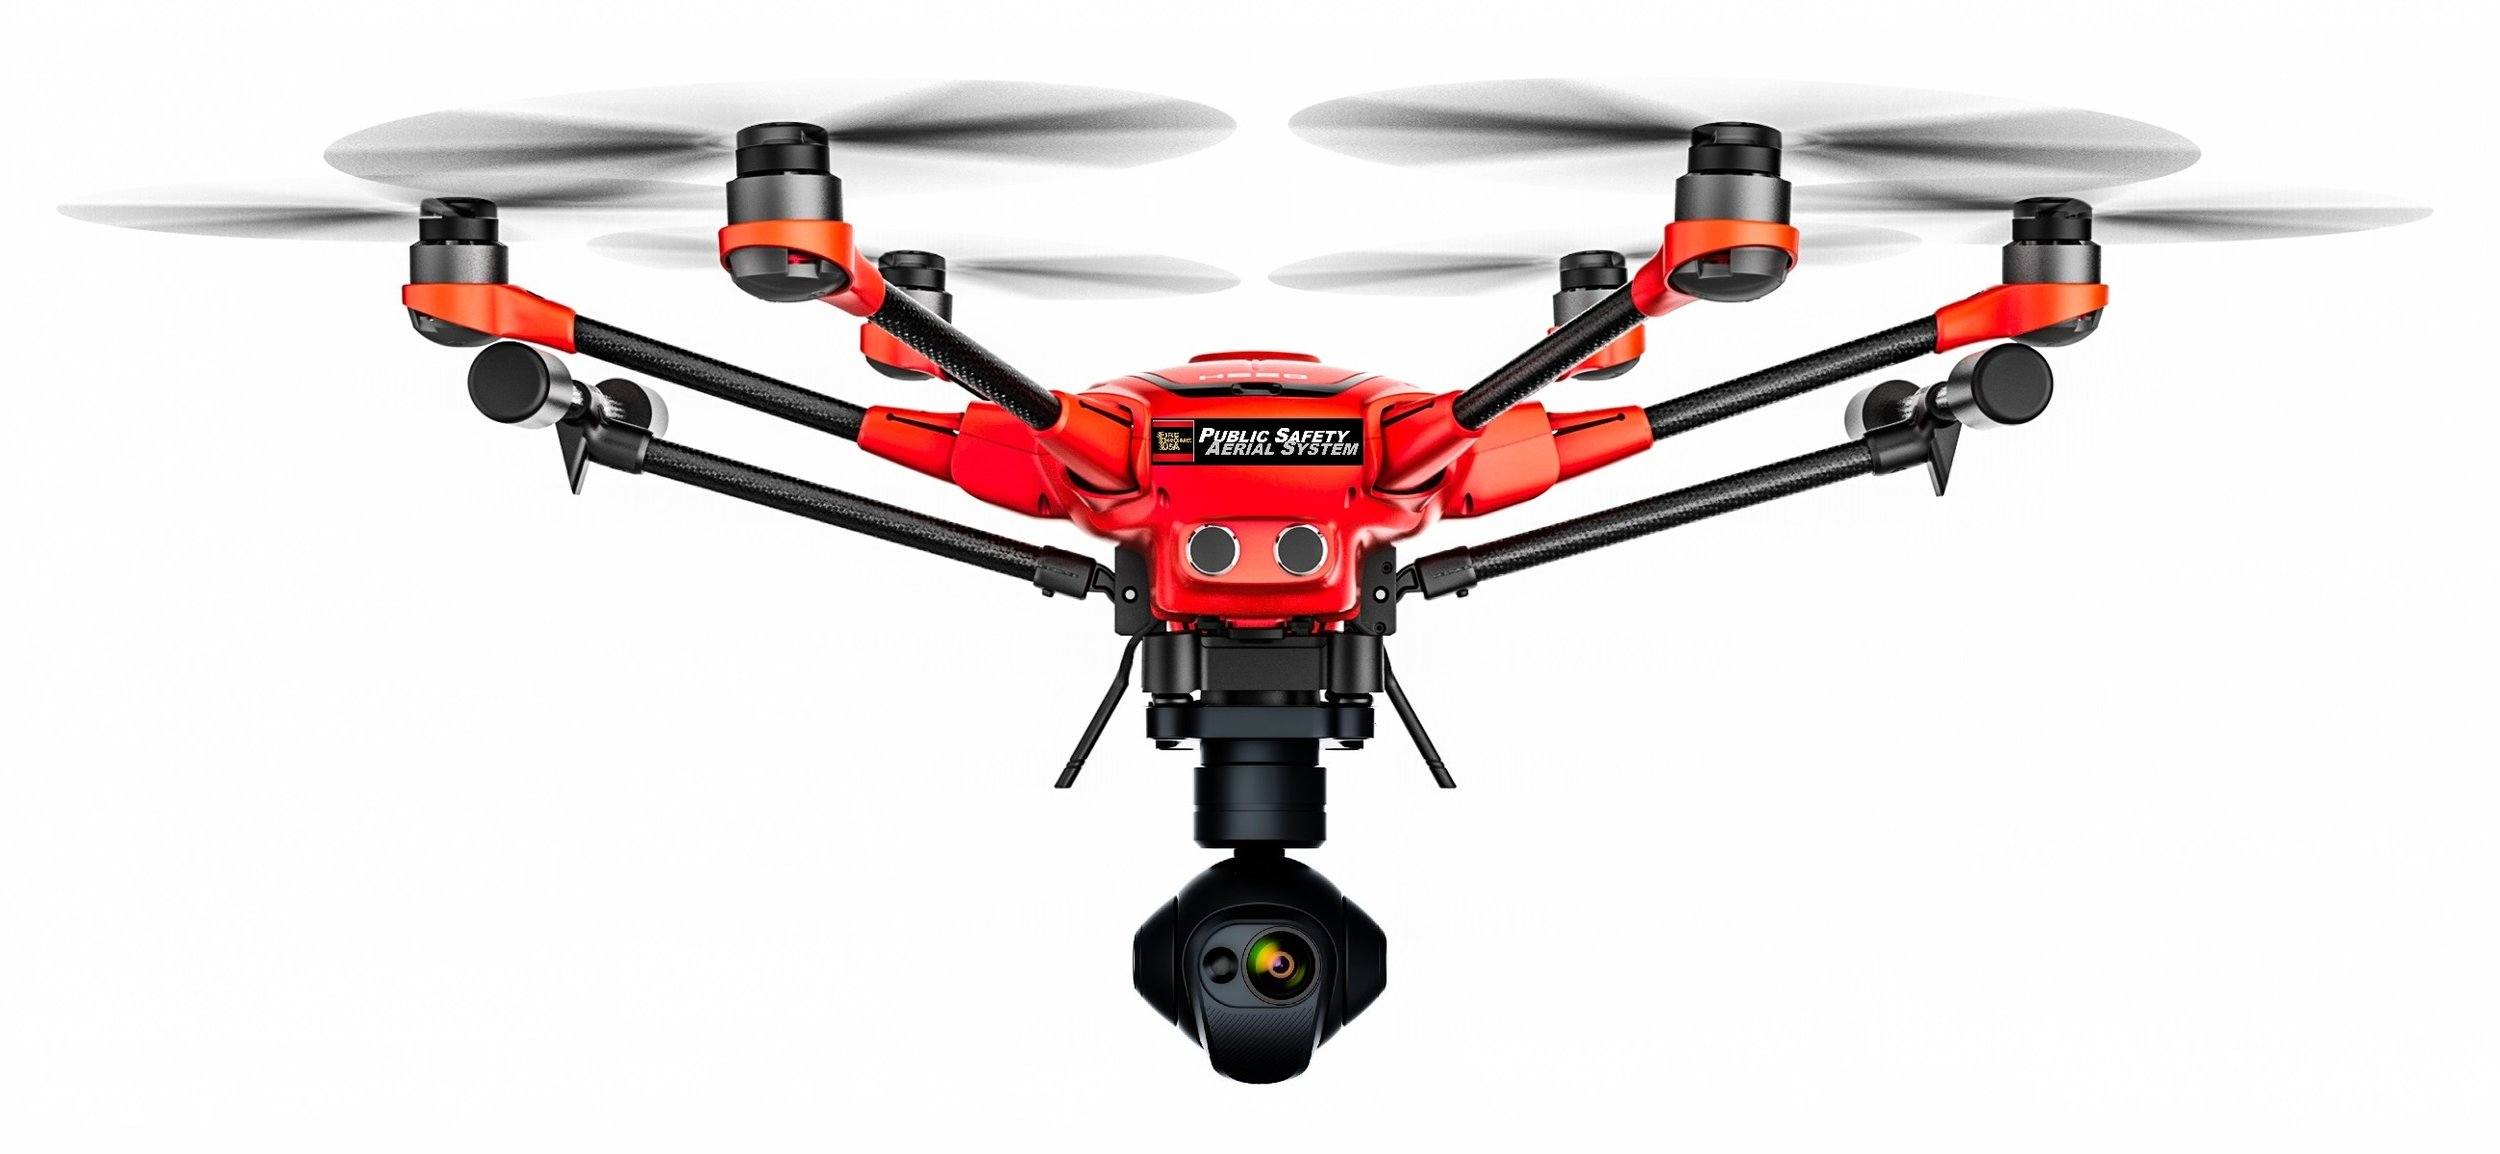 Public Safety #1 - The FireDroneUSA Hexacopter is top of the league in providing quality features and performance. From thermal imaging to stability in high winds, it is built to last.